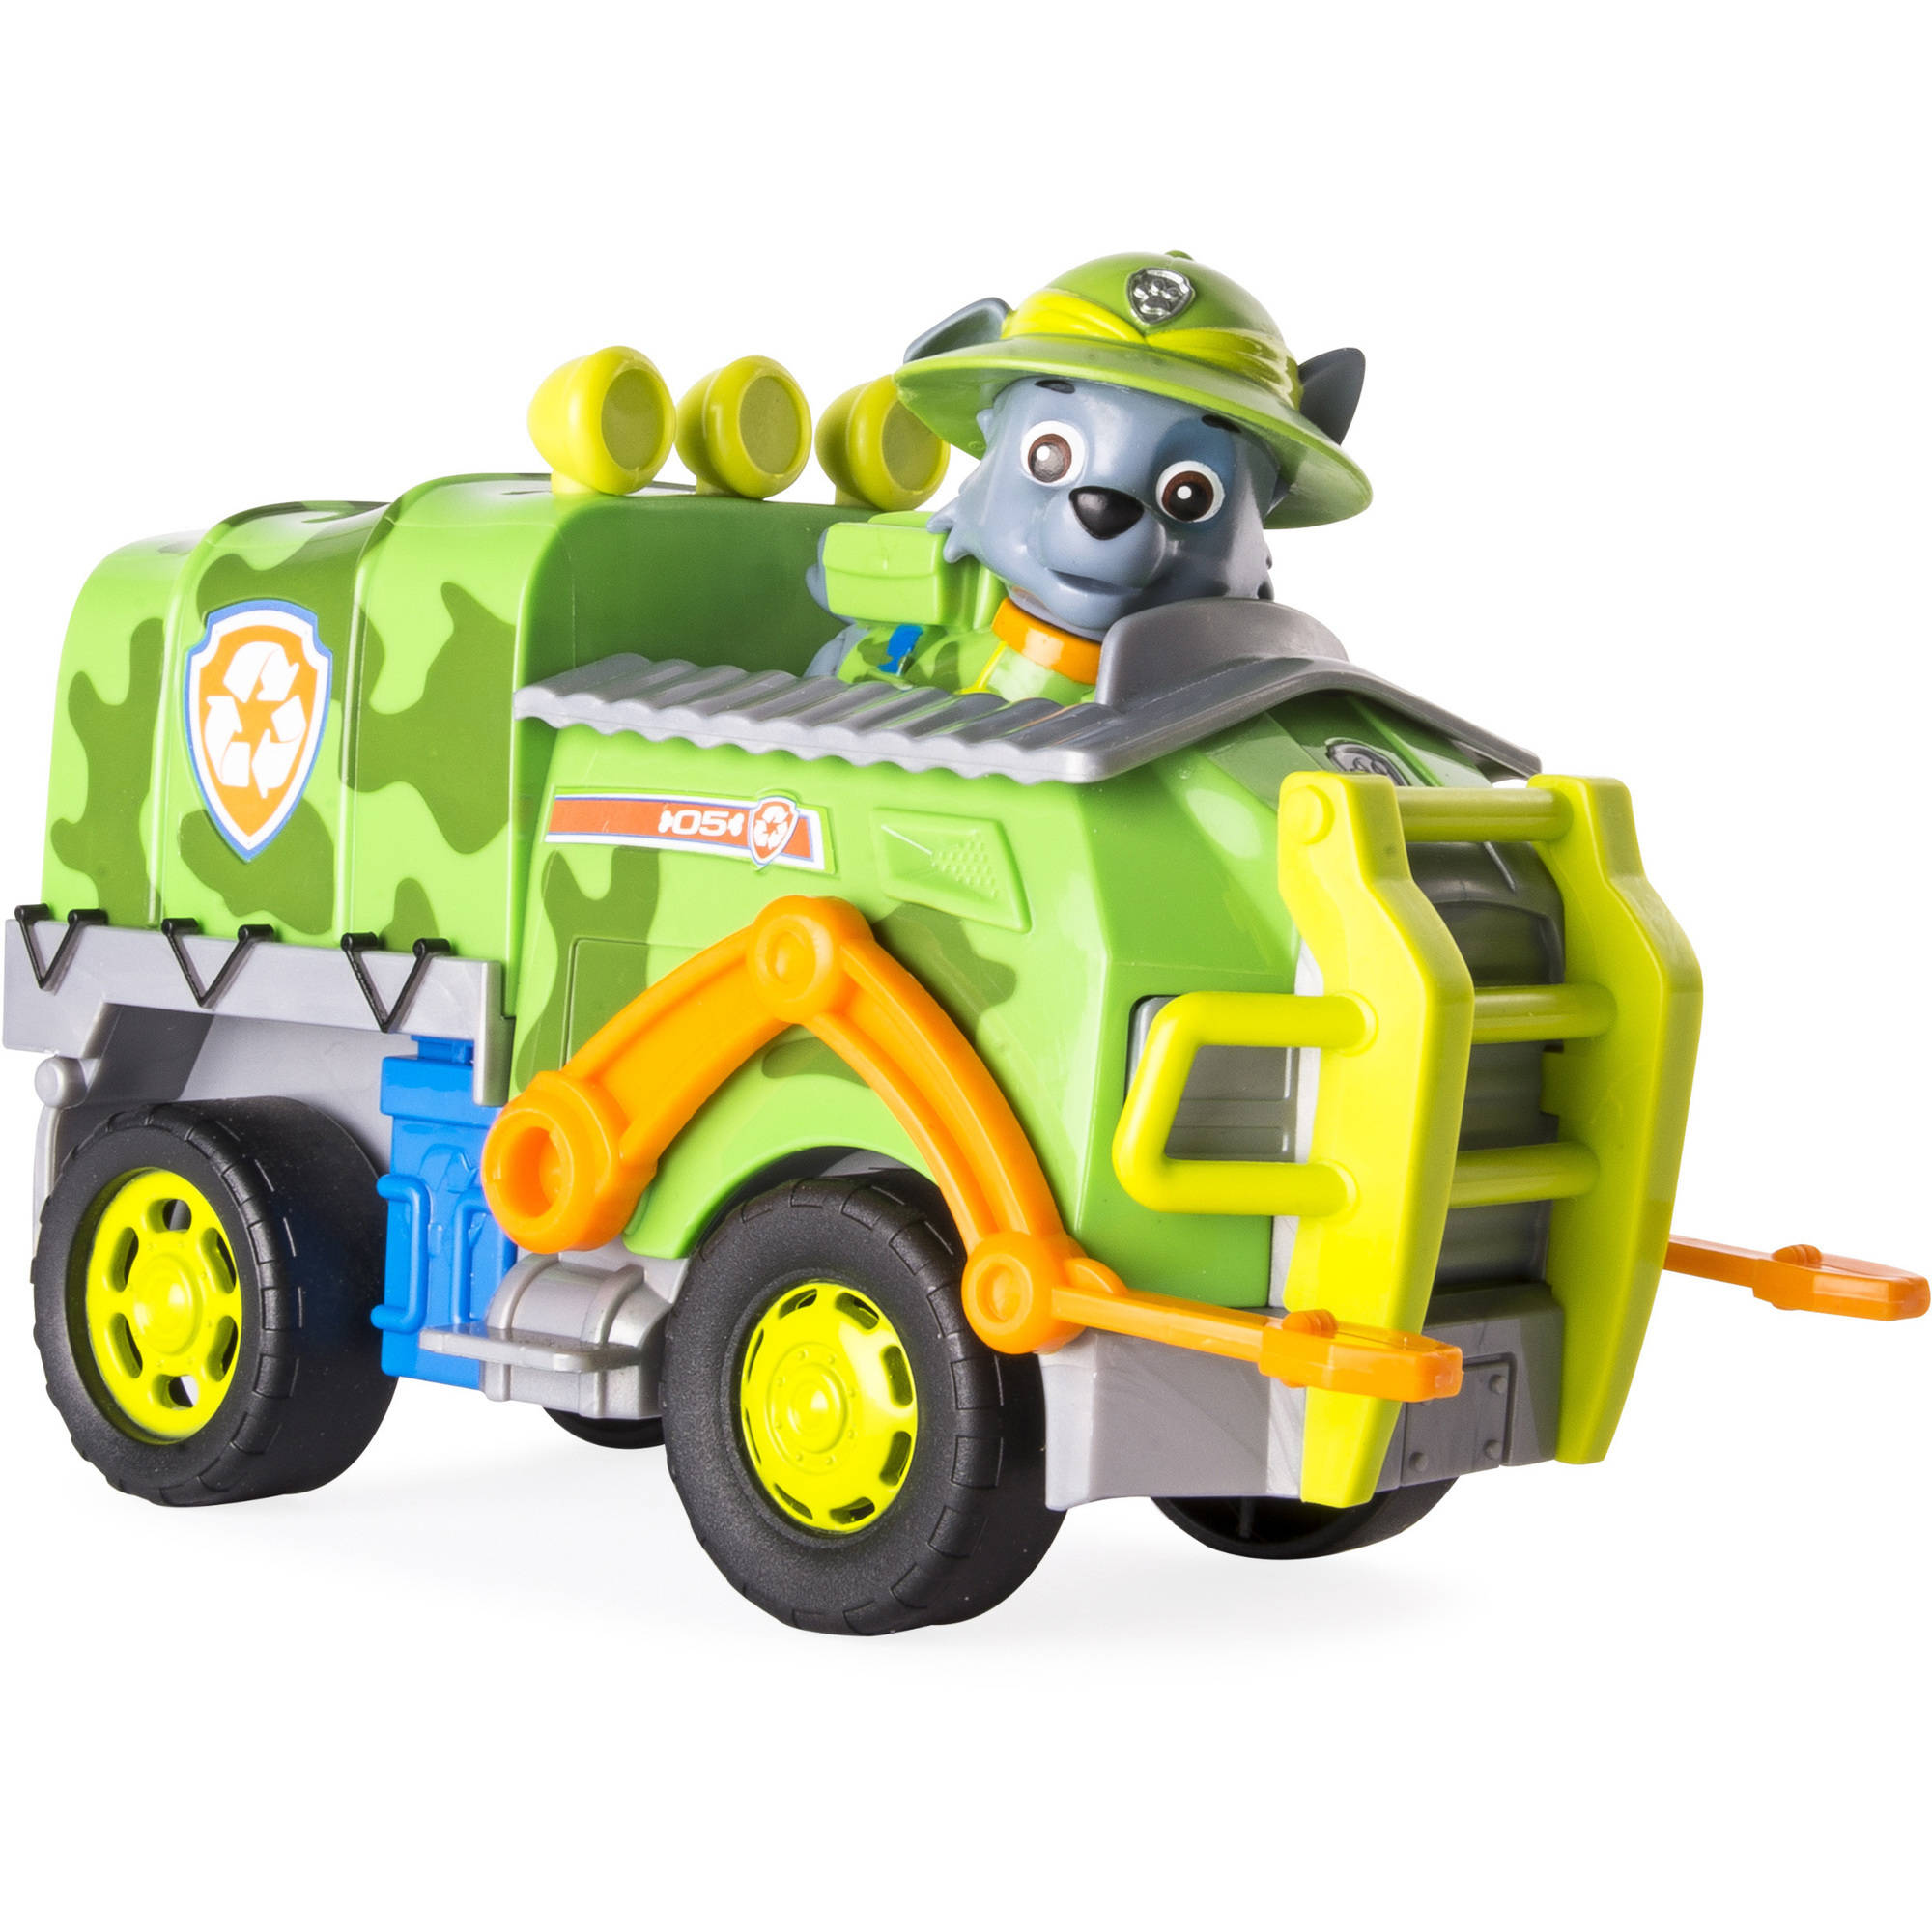 Nickelodeon Paw Patrol Rocky s Recycling Truck Vehicle and